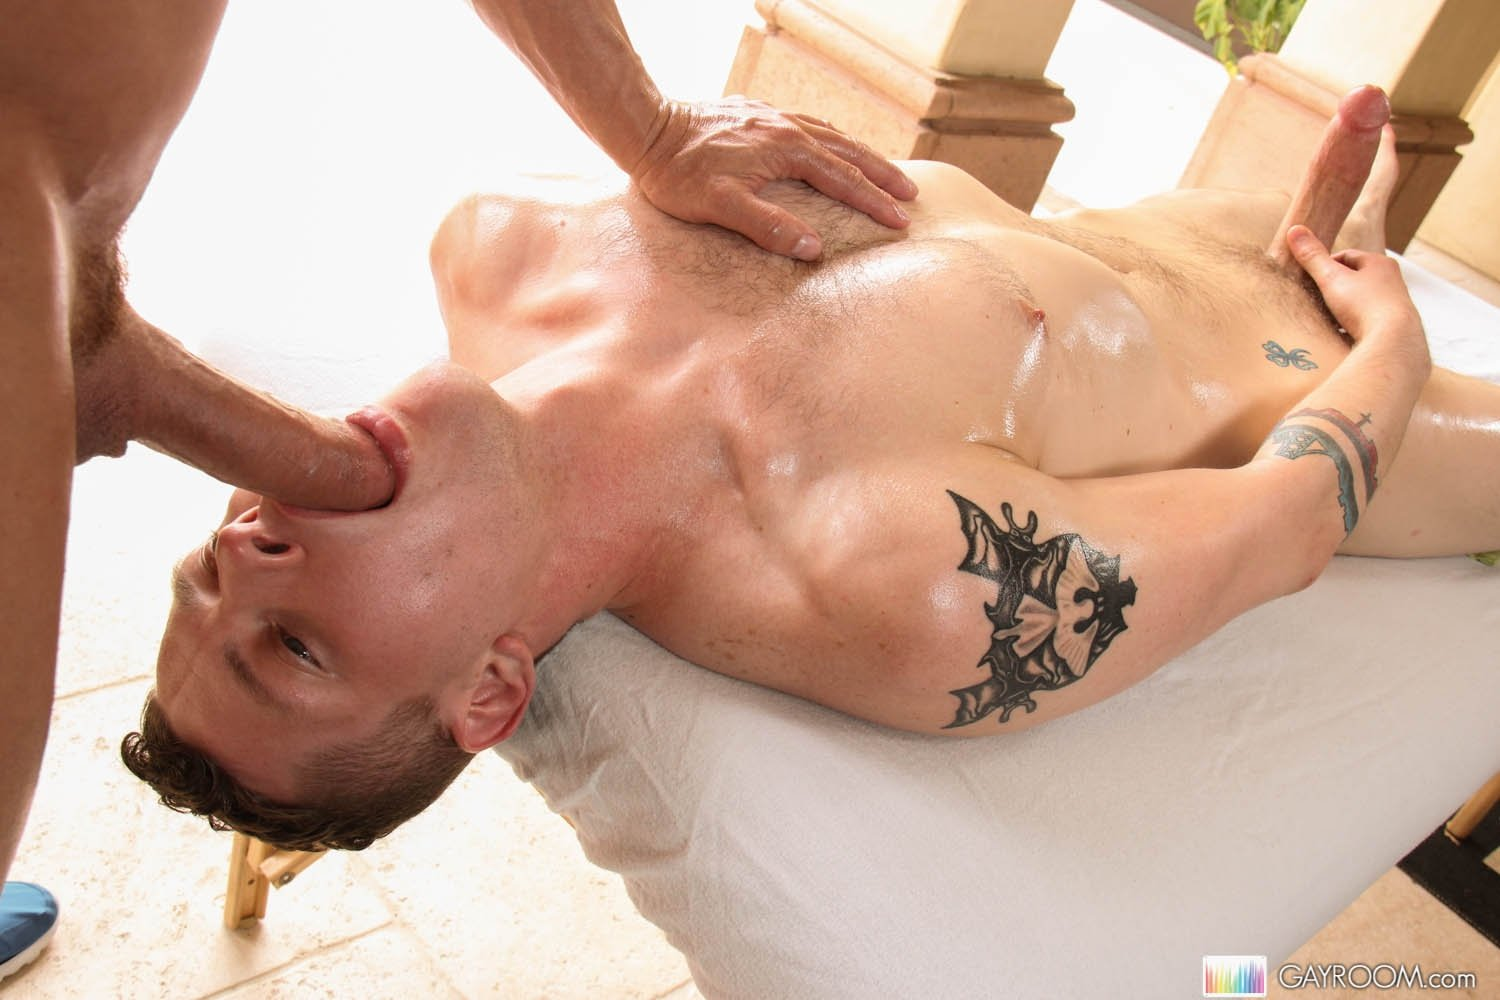 sex video Hardcore sexy gay massage